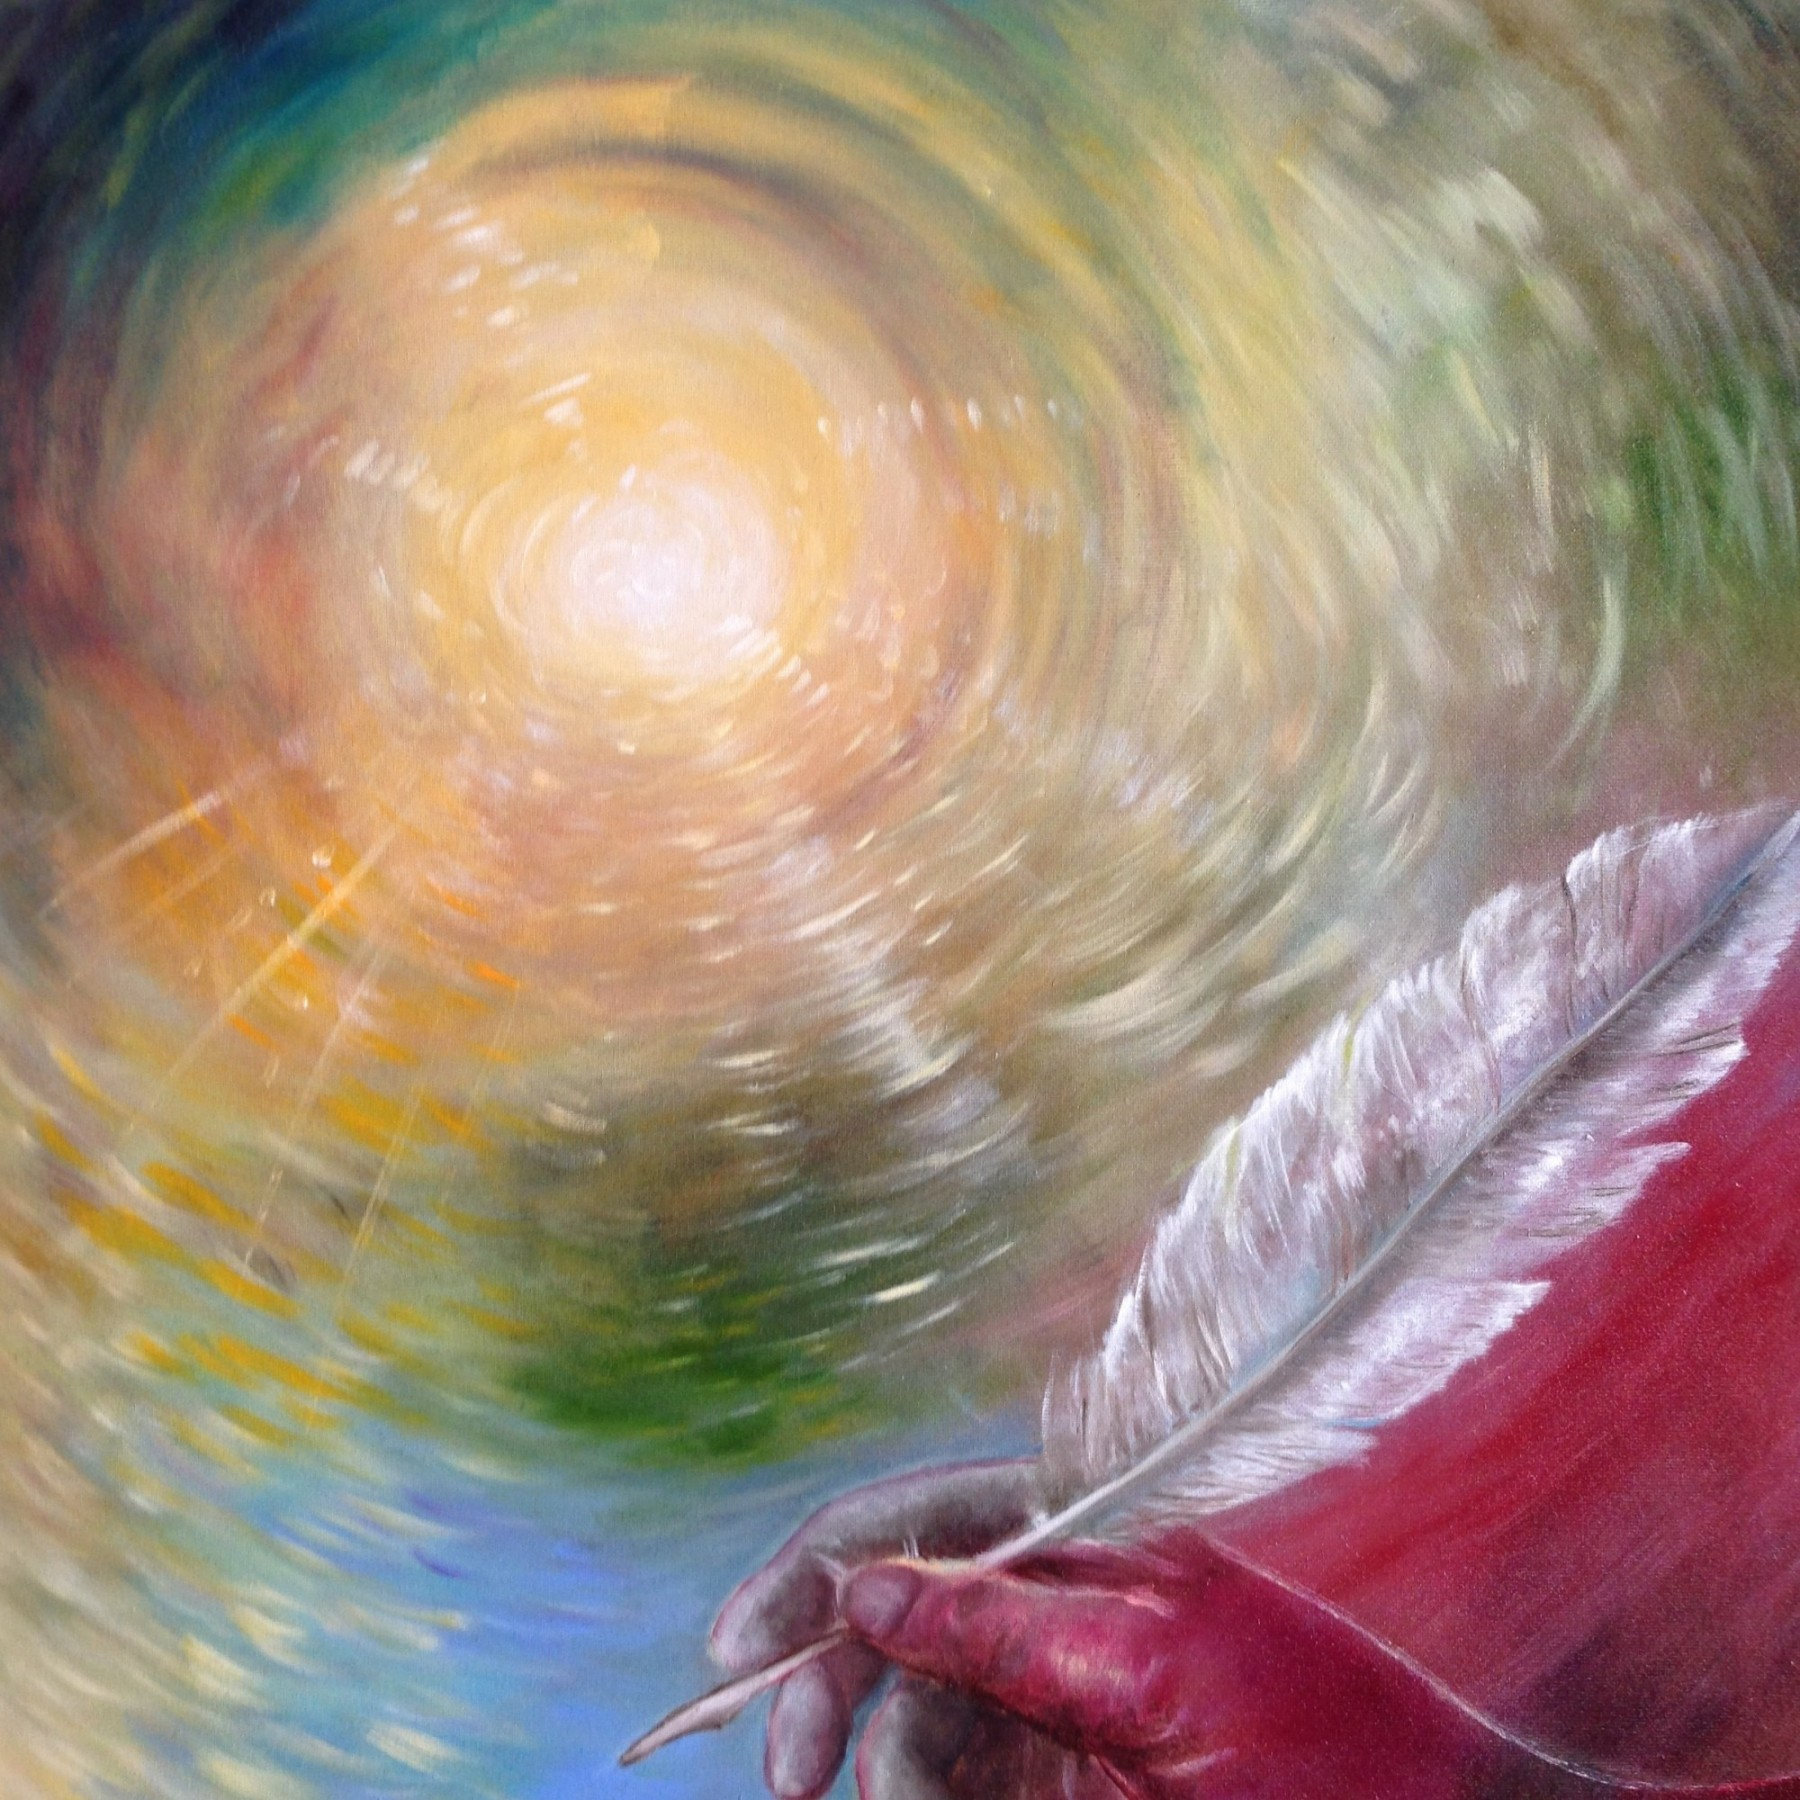 La Promessa del Regno Messianico, 2013, Oil on canvas, 50x70cm - exhibitions